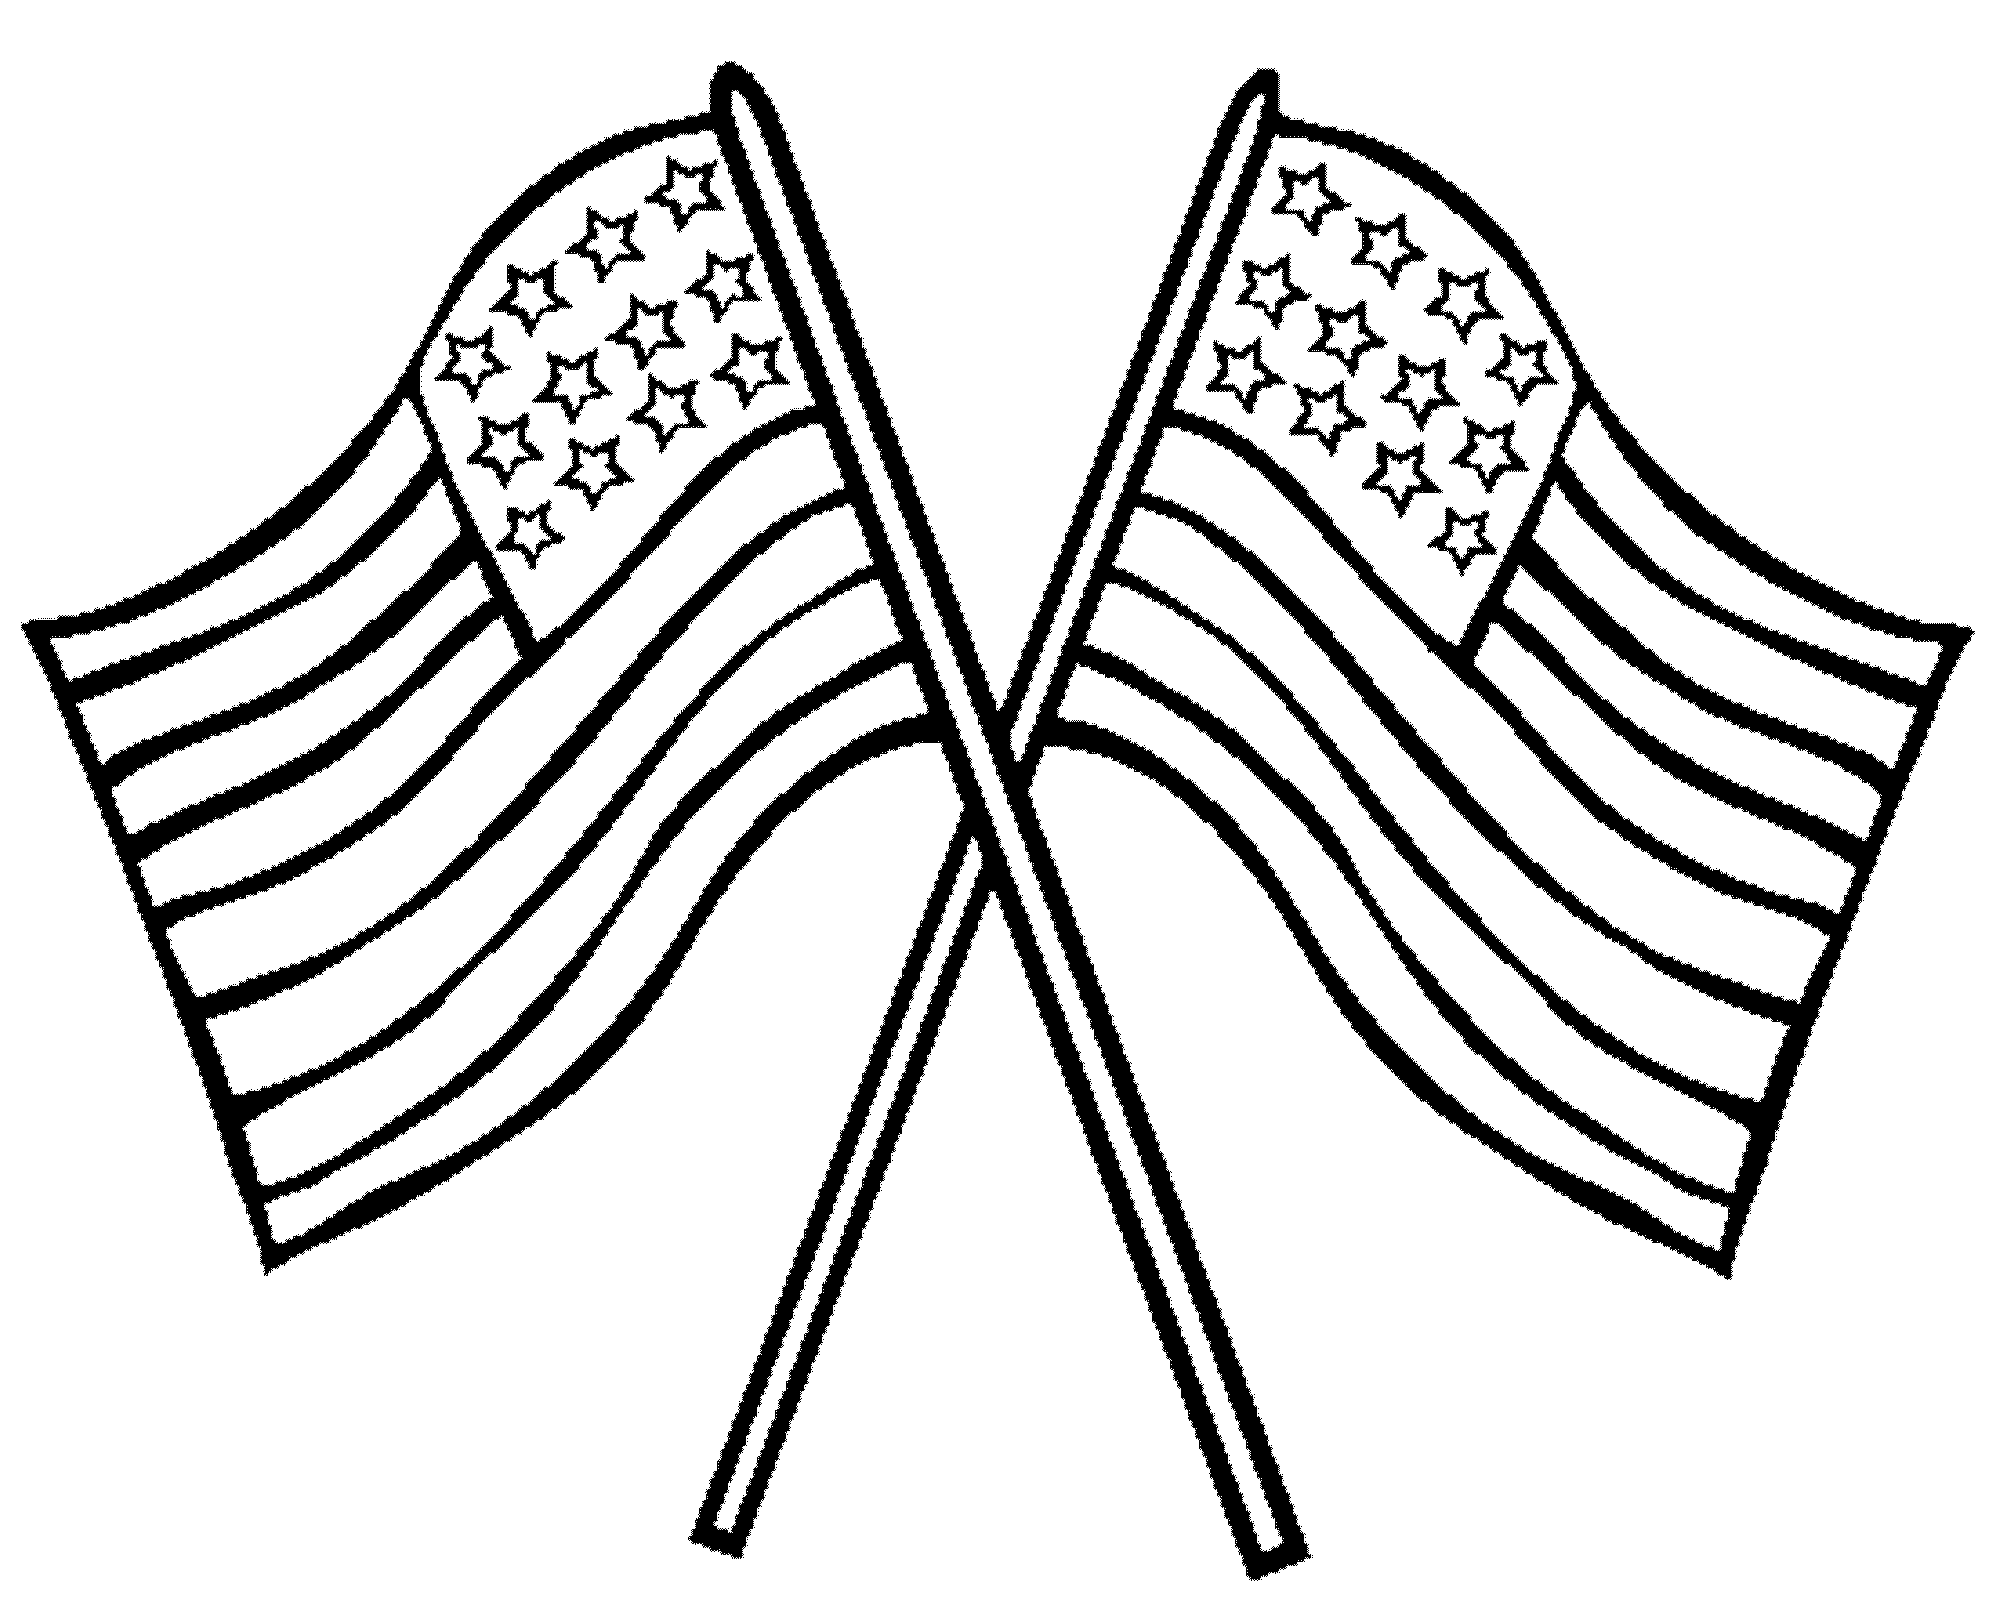 2000x1623 American Flag Coloring Pages For Preschool